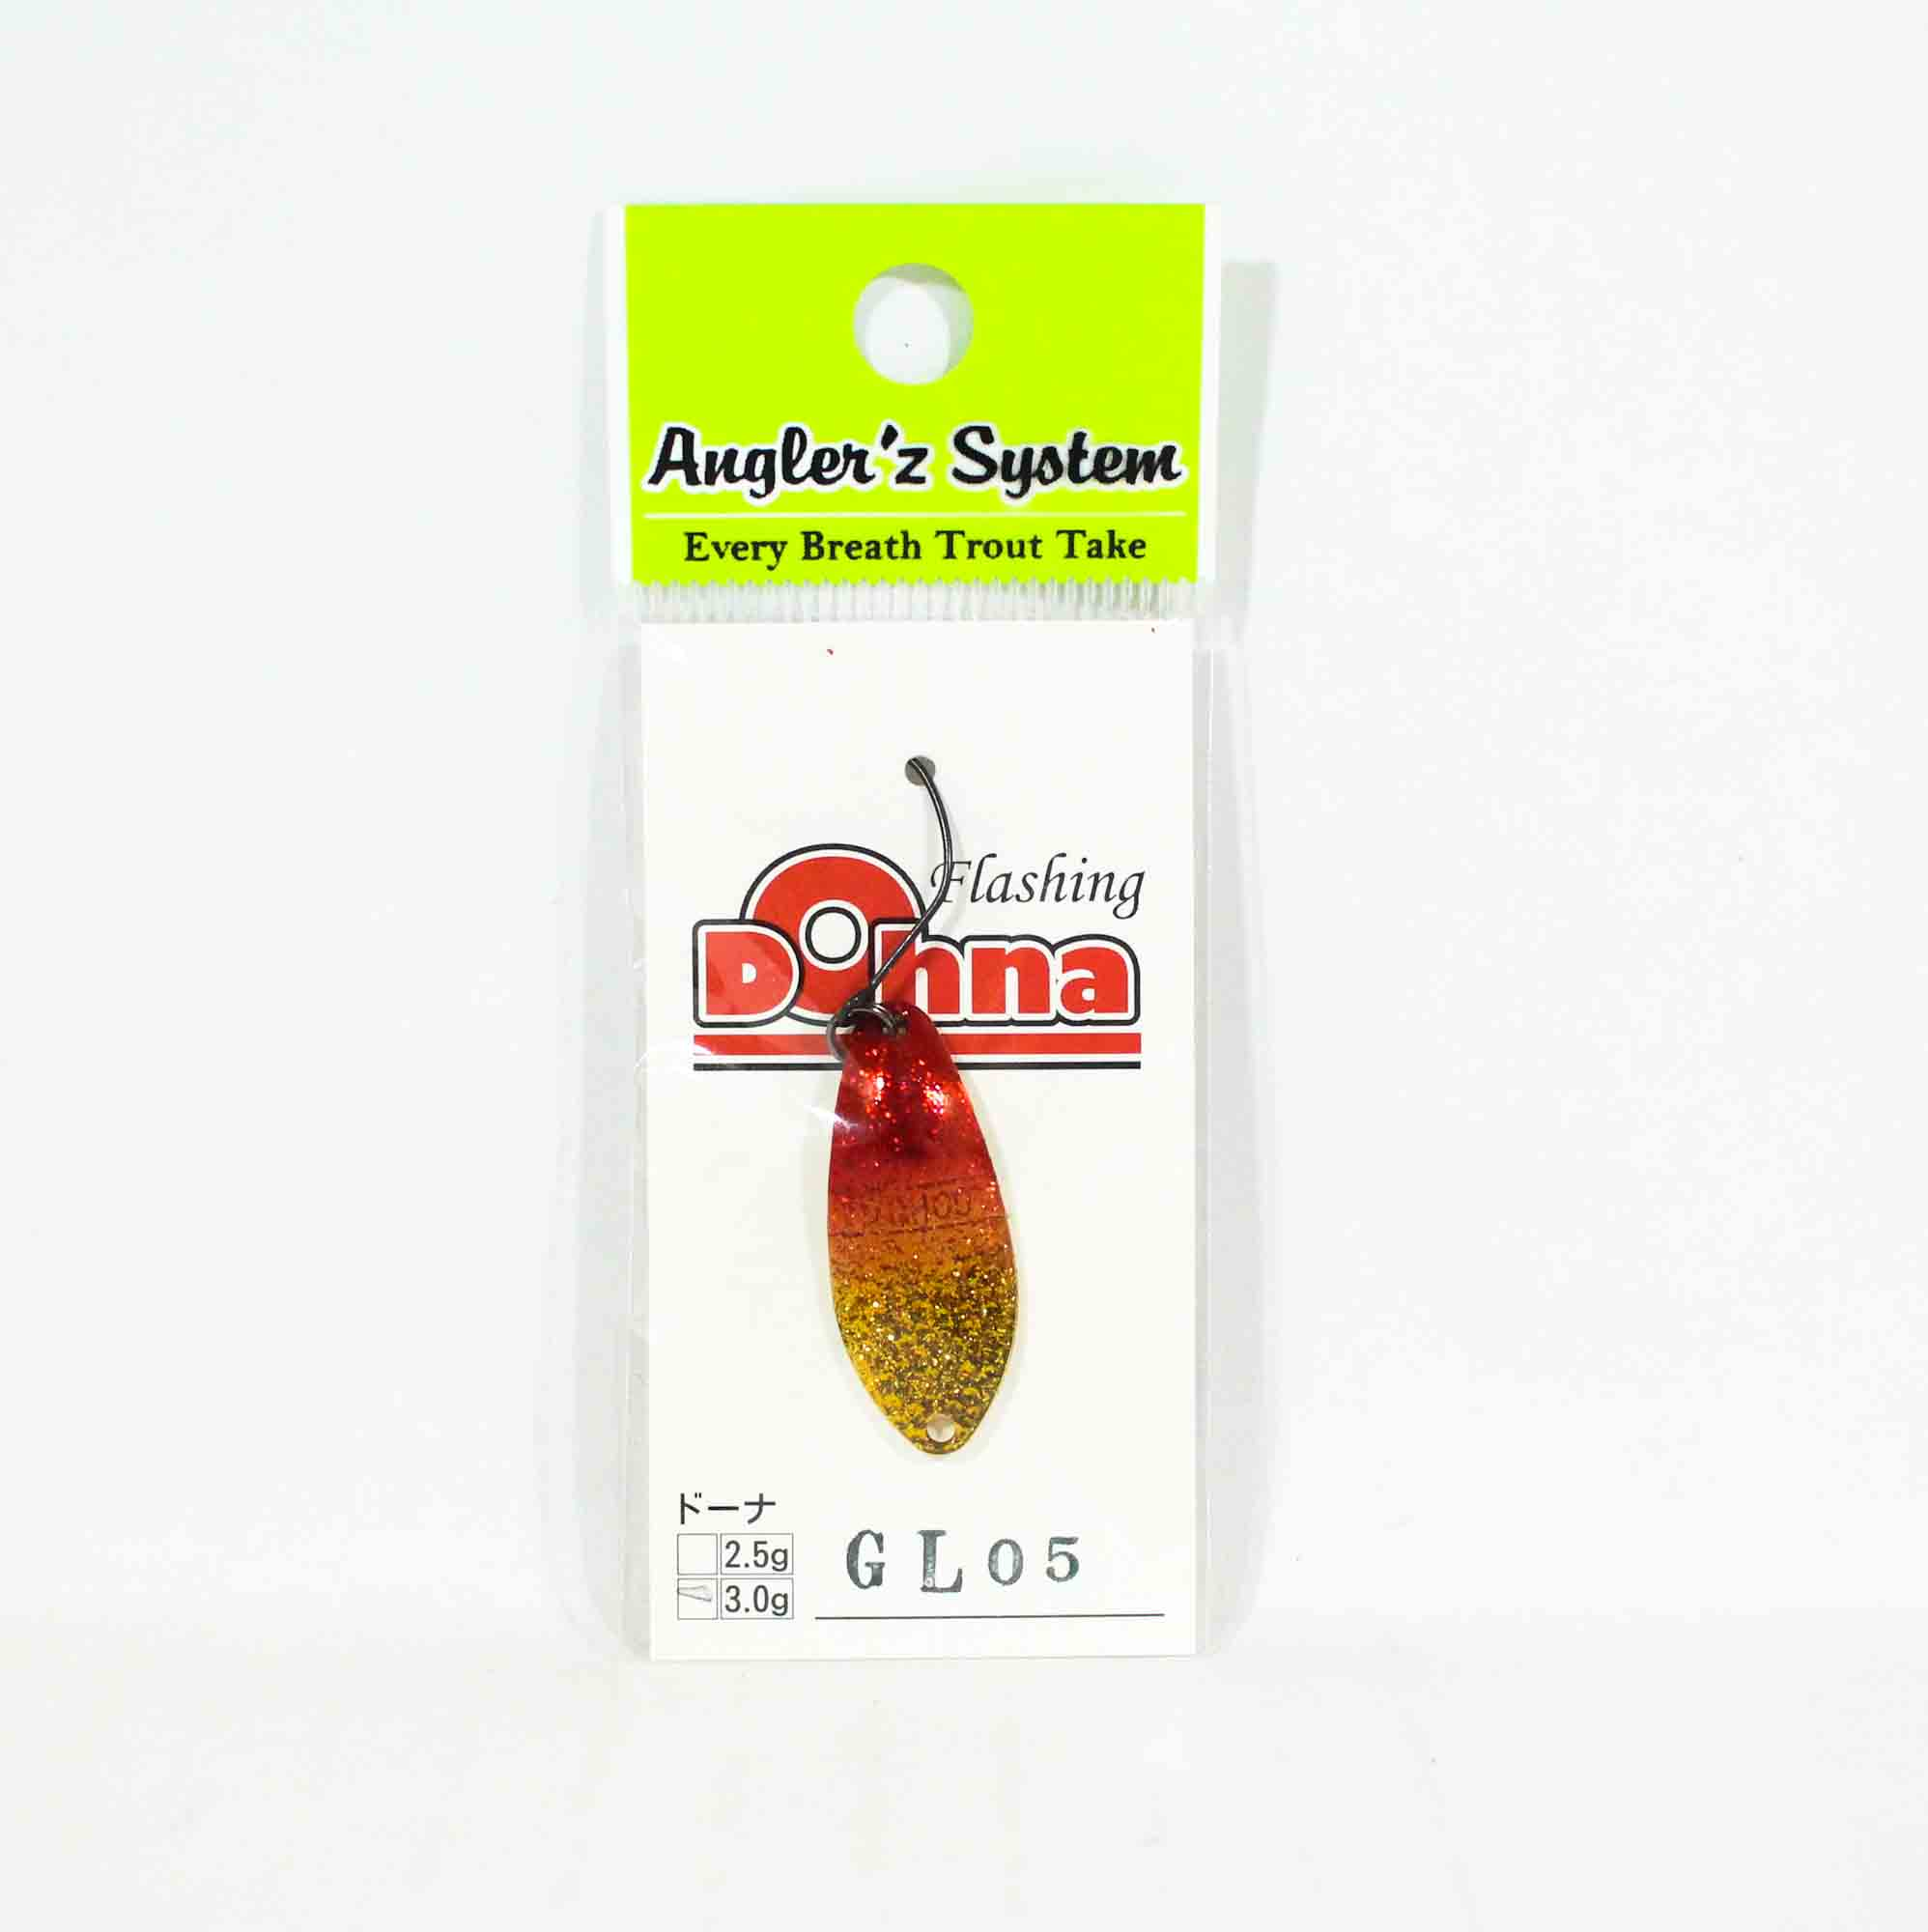 Anglers System Antem Dohna 3.0 grams Spoon Sinking Lure GL05 (6703)